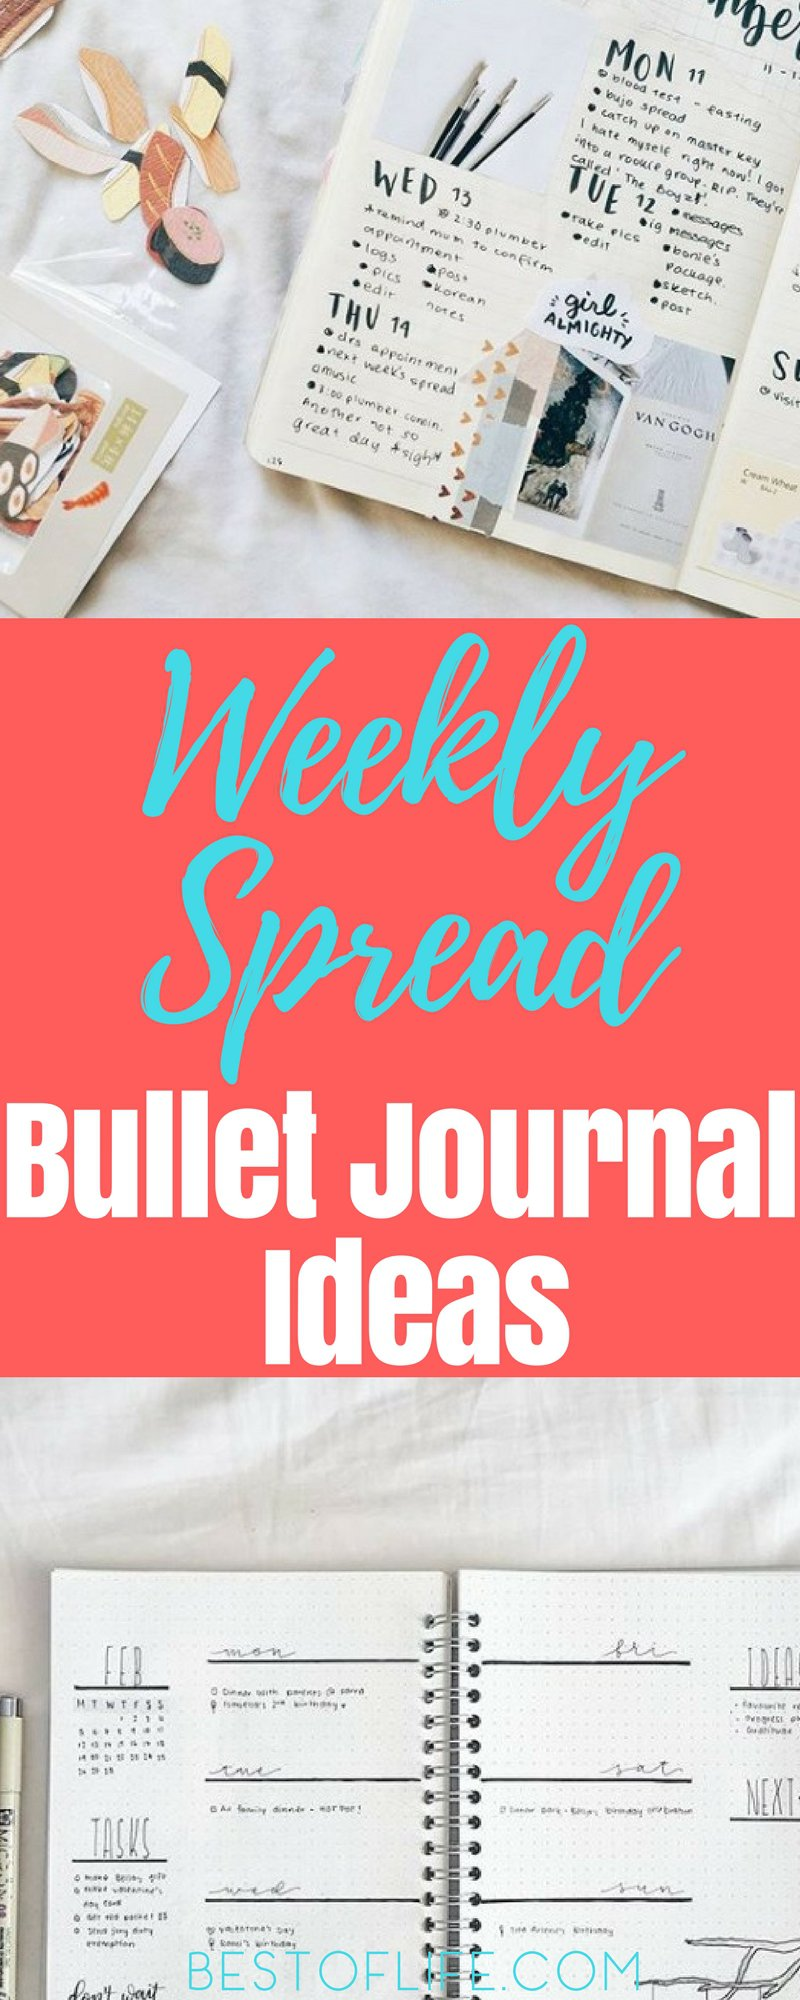 The best and most simple weekly spread bullet journal ideas will make it easy to organize your life without working too hard. Bullet Journal Weekly Spread Ideas | Easy Weekly Spread Ideas #bulletjournal #BuJo #weeklyspread #organization #bulletjournaldailylog #journaling